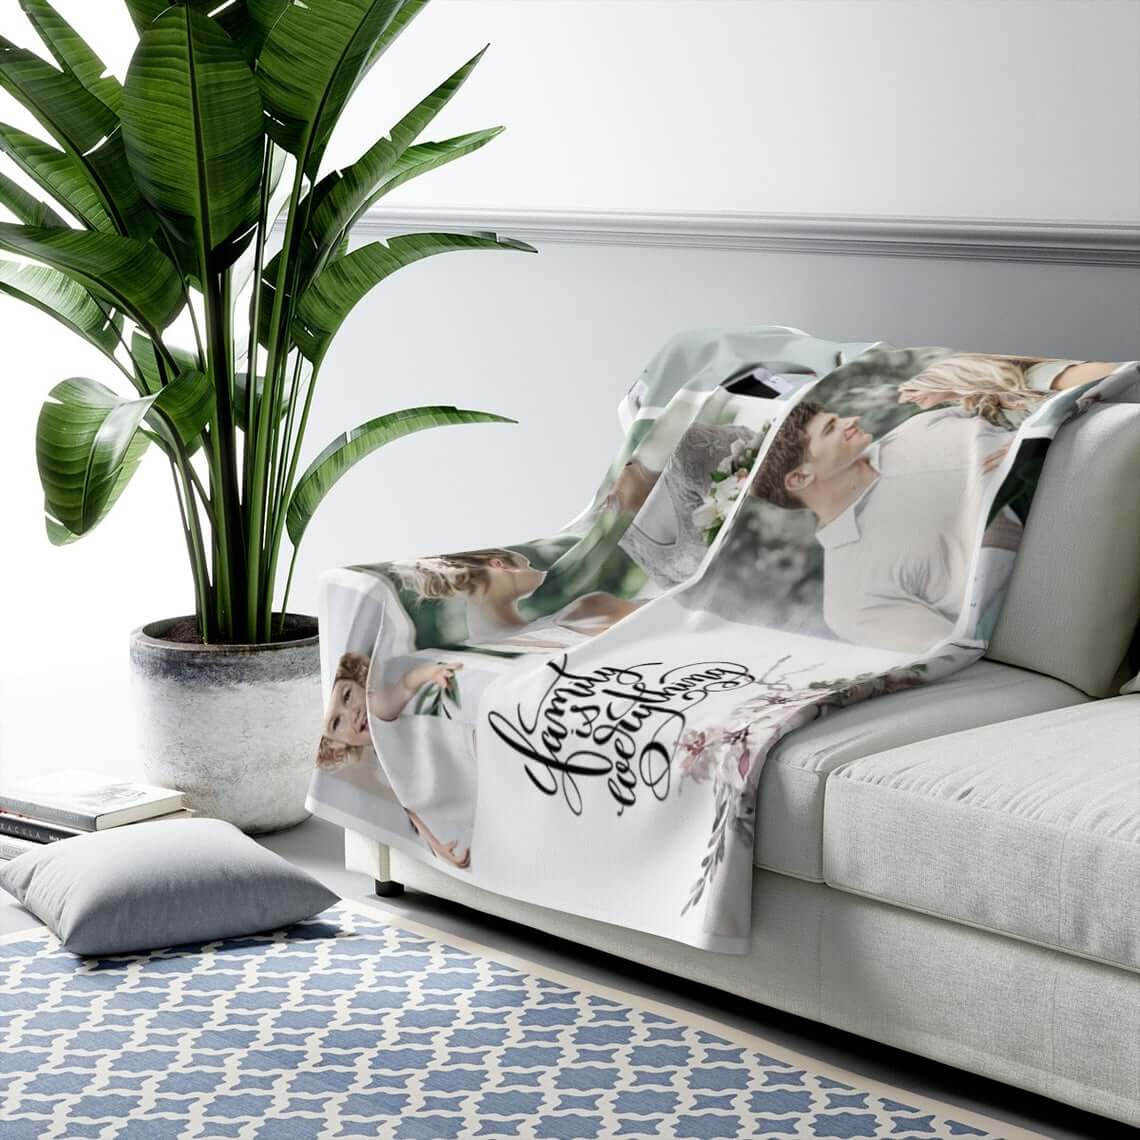 Full-Color Photo Blanket for Adults